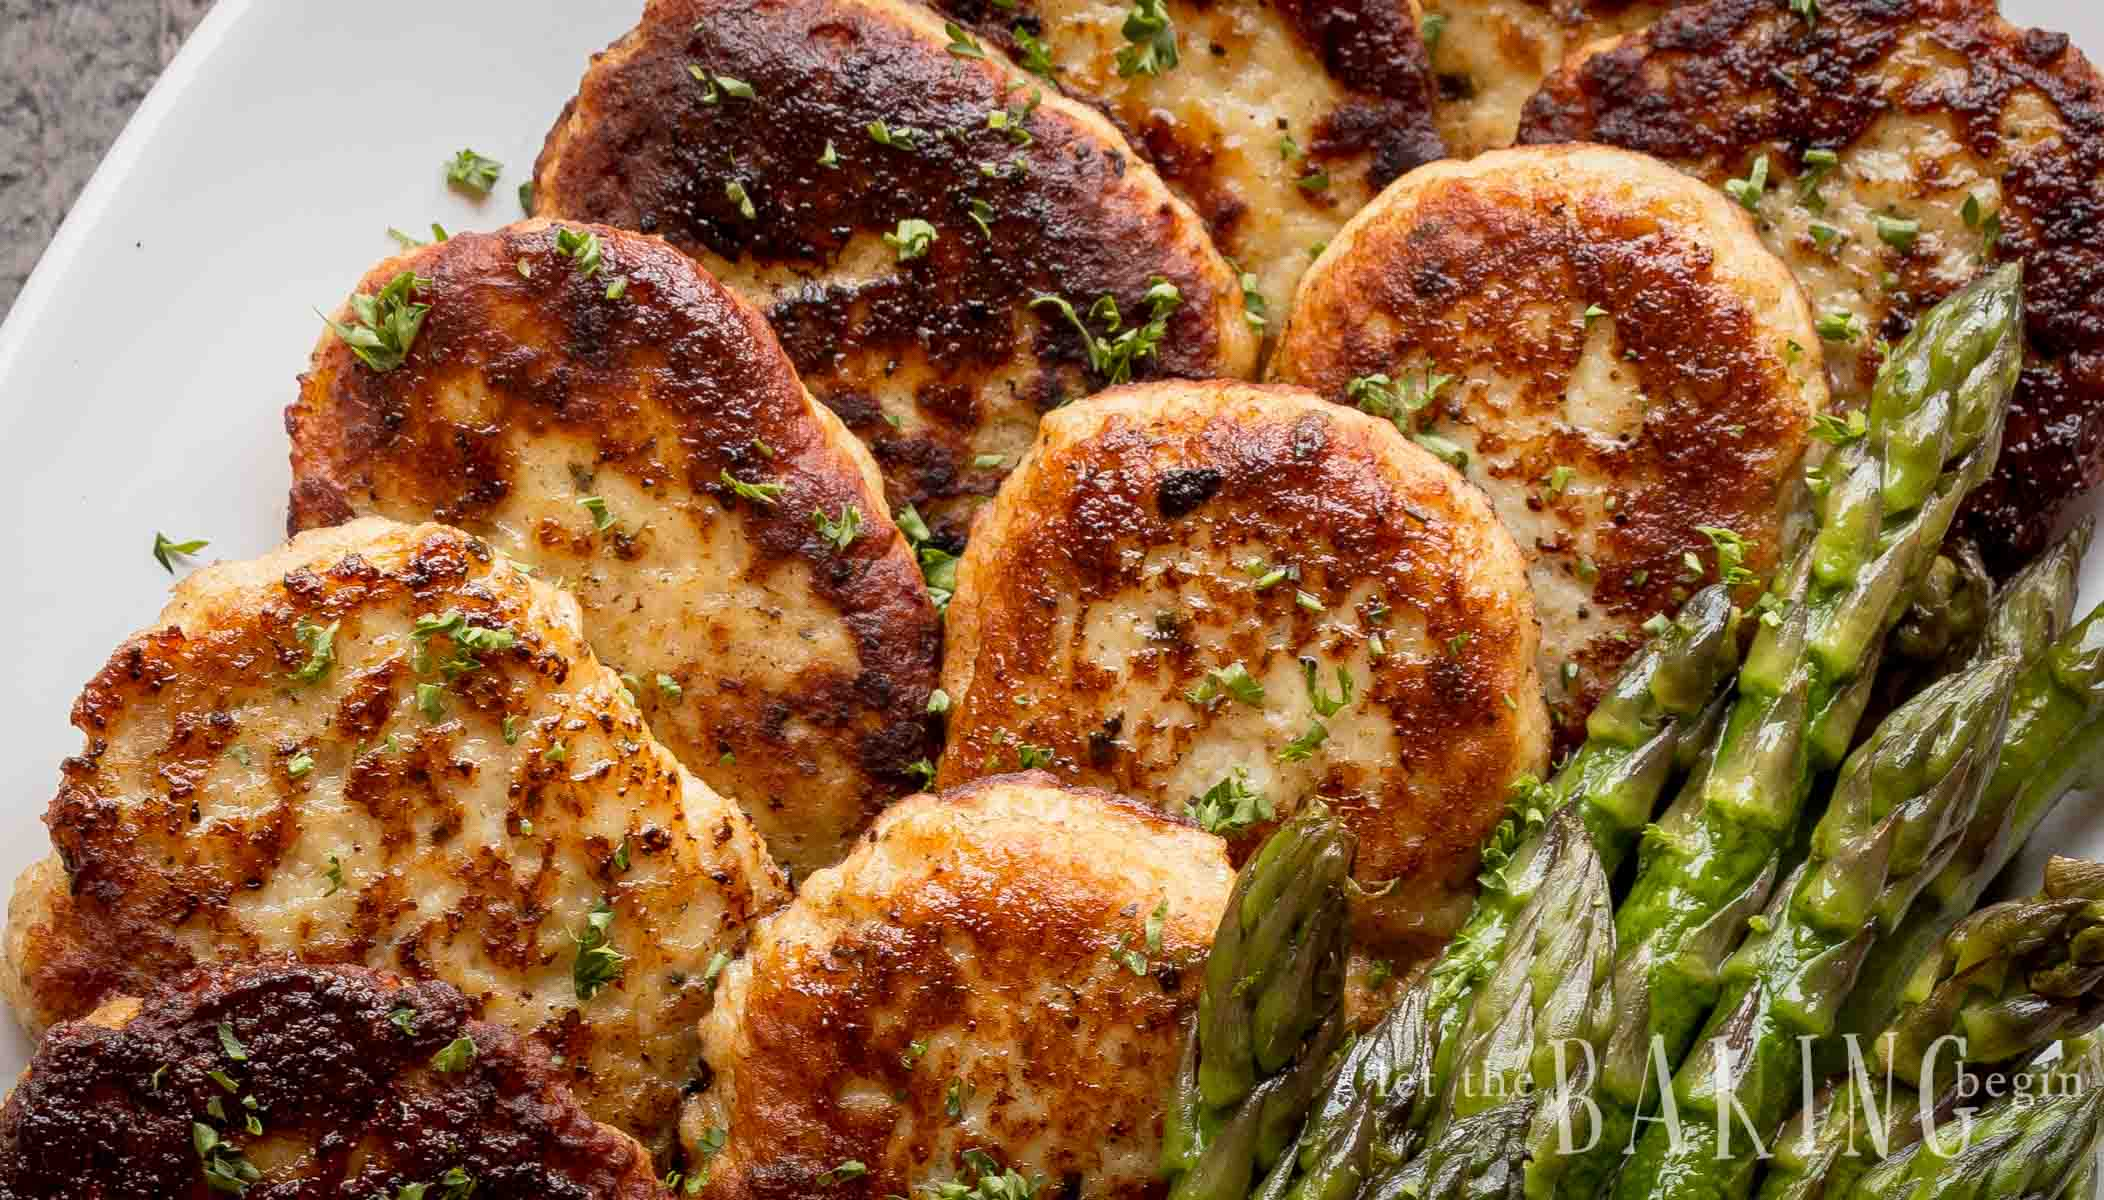 Close up of the best chicken thigh recipe - kotleti. Freshly seasoned patties with fresh herbs and a side of asparagus.